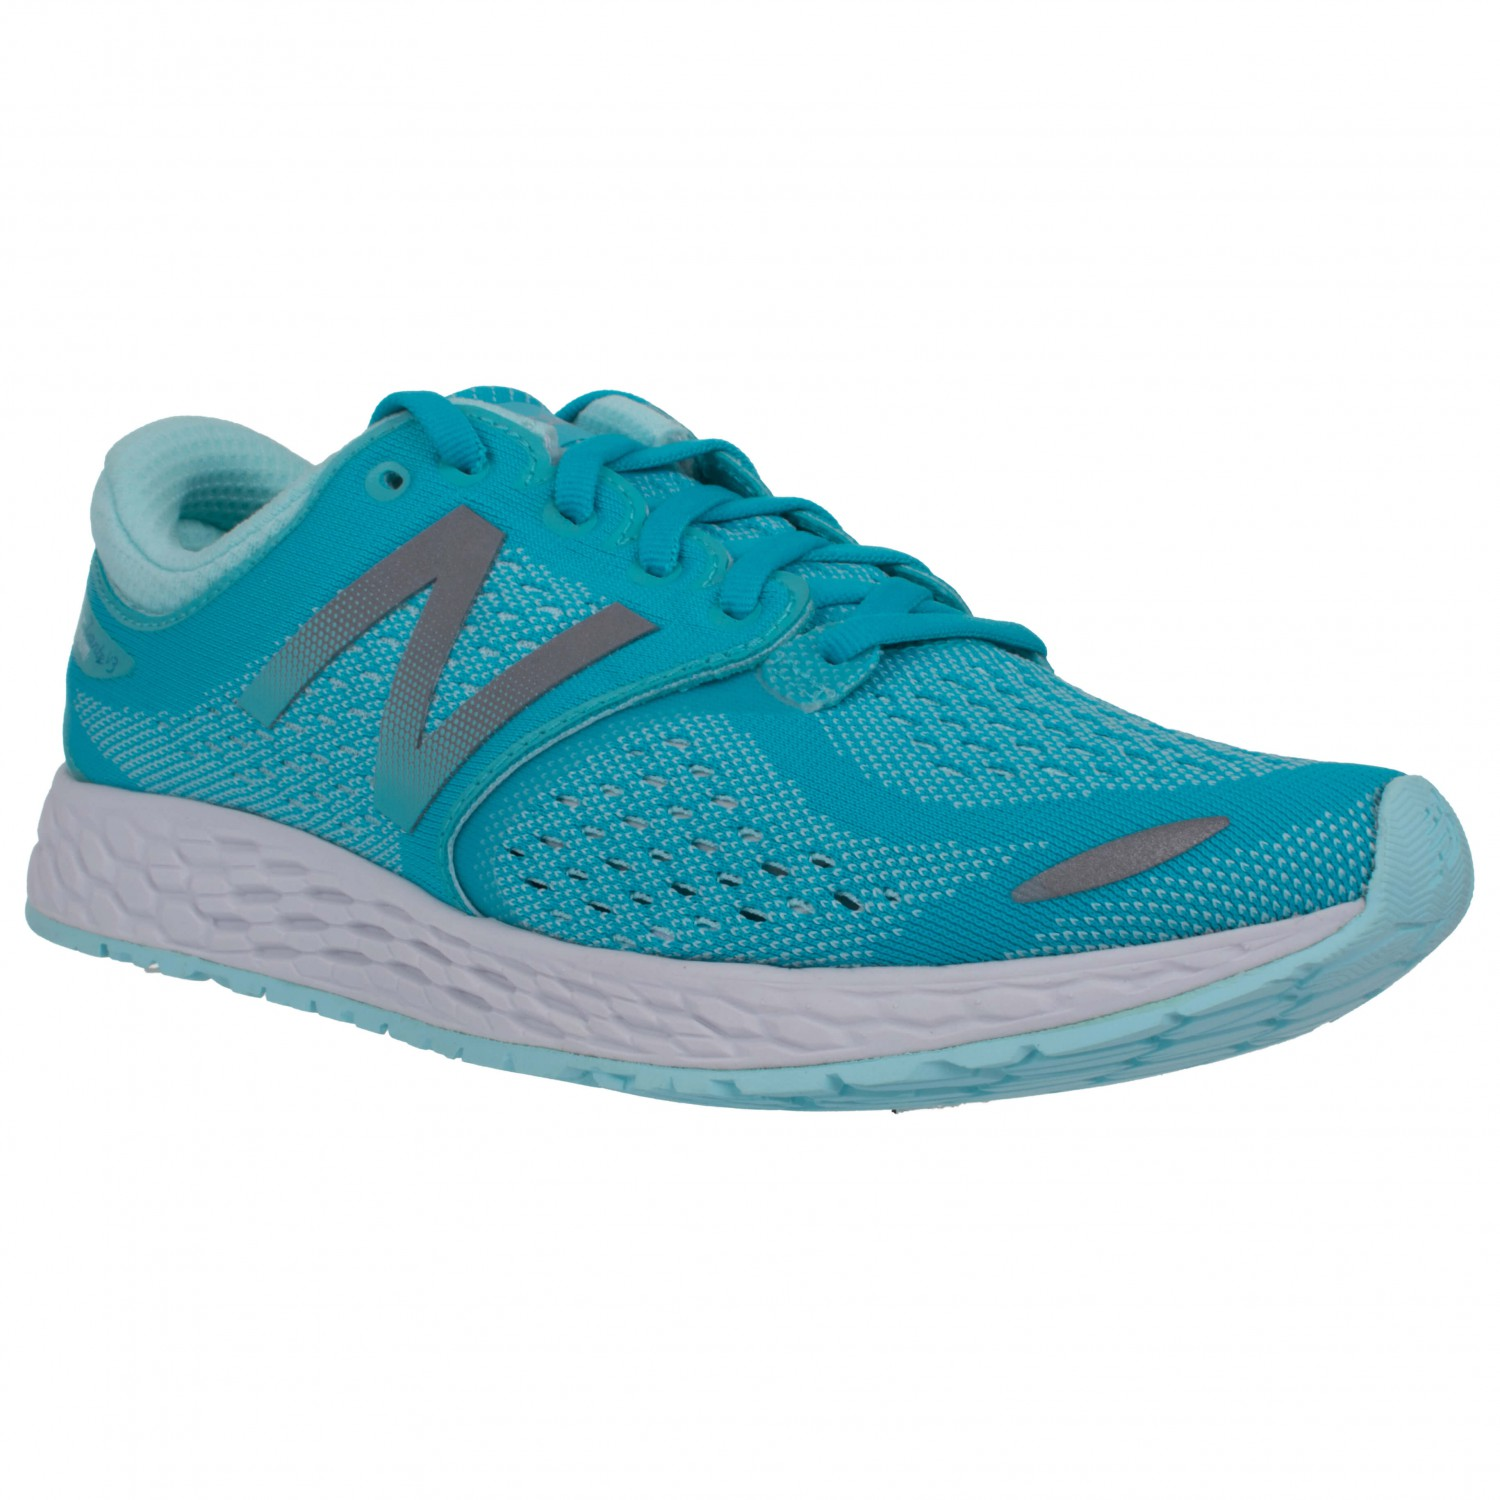 New Balance - Women's Fresh Foam Zante v3 - Runningschuhe Blue / White